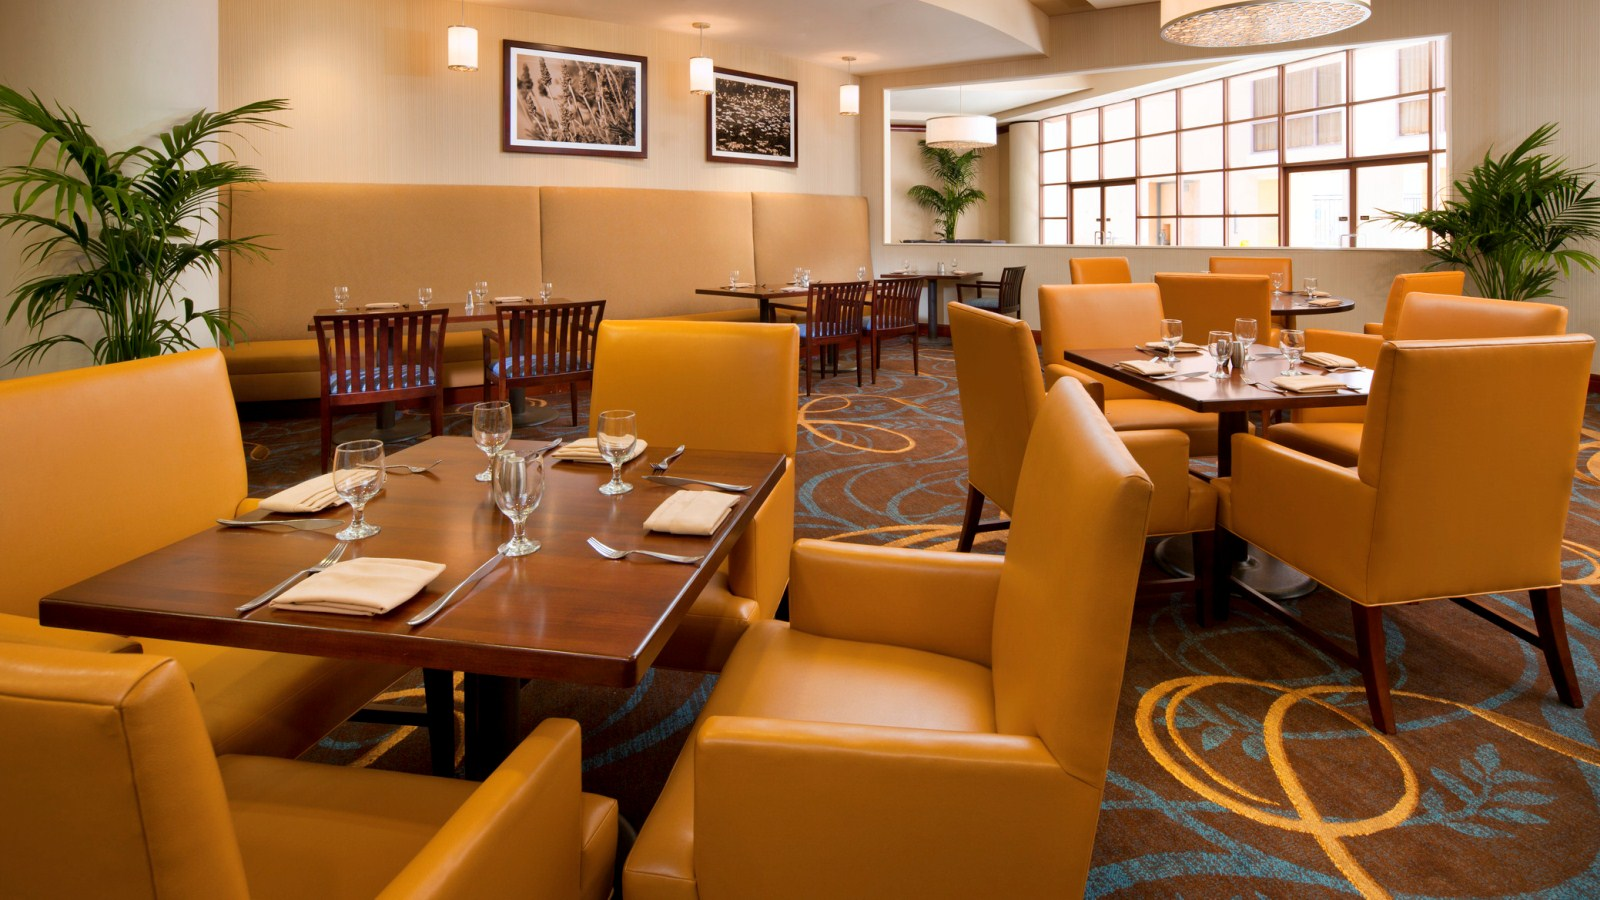 Agoura Hills Restaurants - Share Restaurant